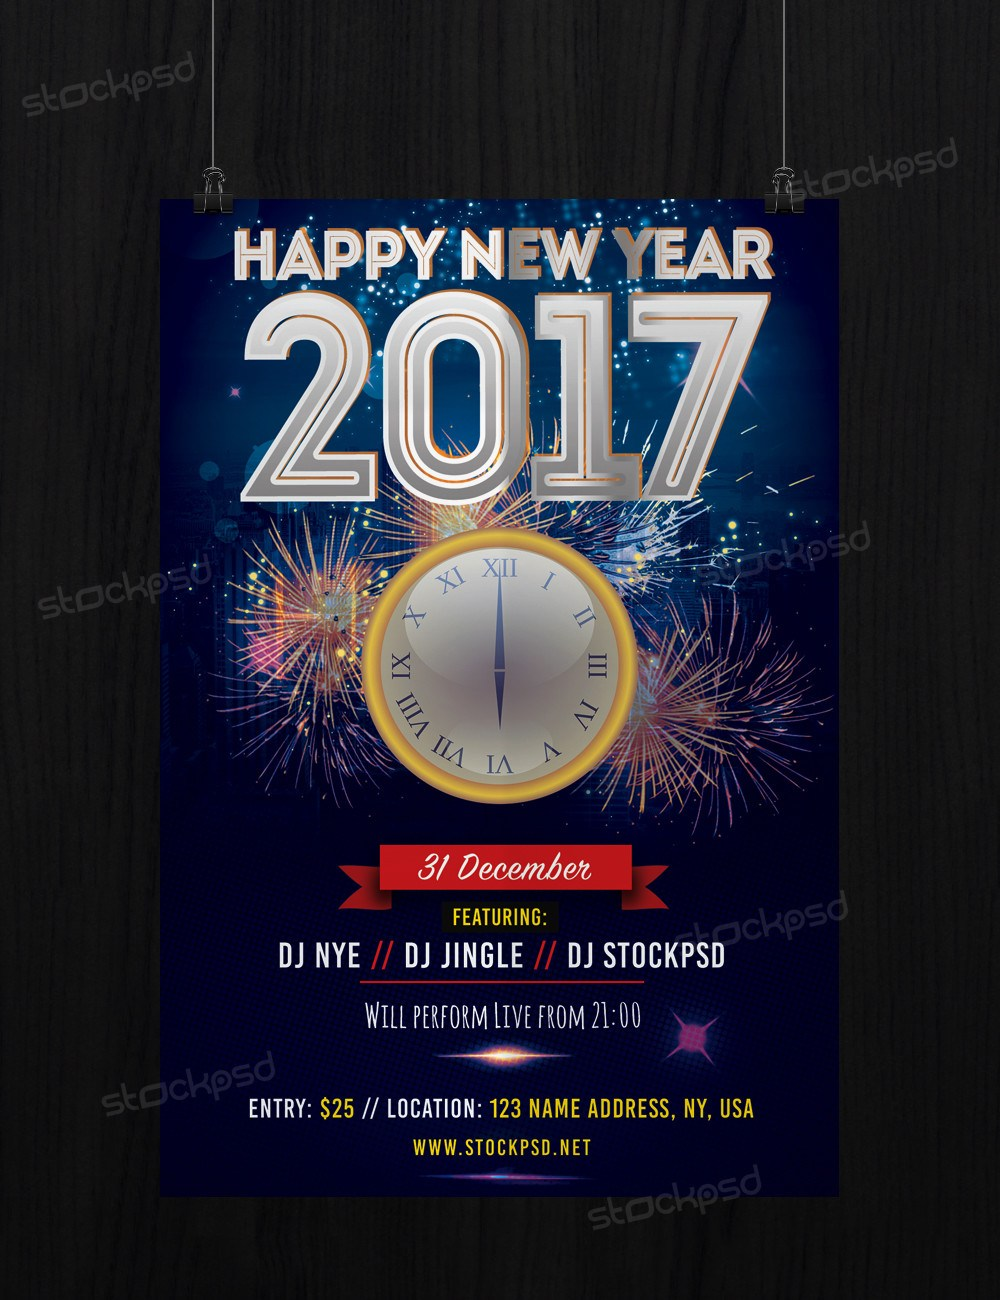 2017 Free New Years Eve - FREE PSD Flyer Template - FreebieDesign.net